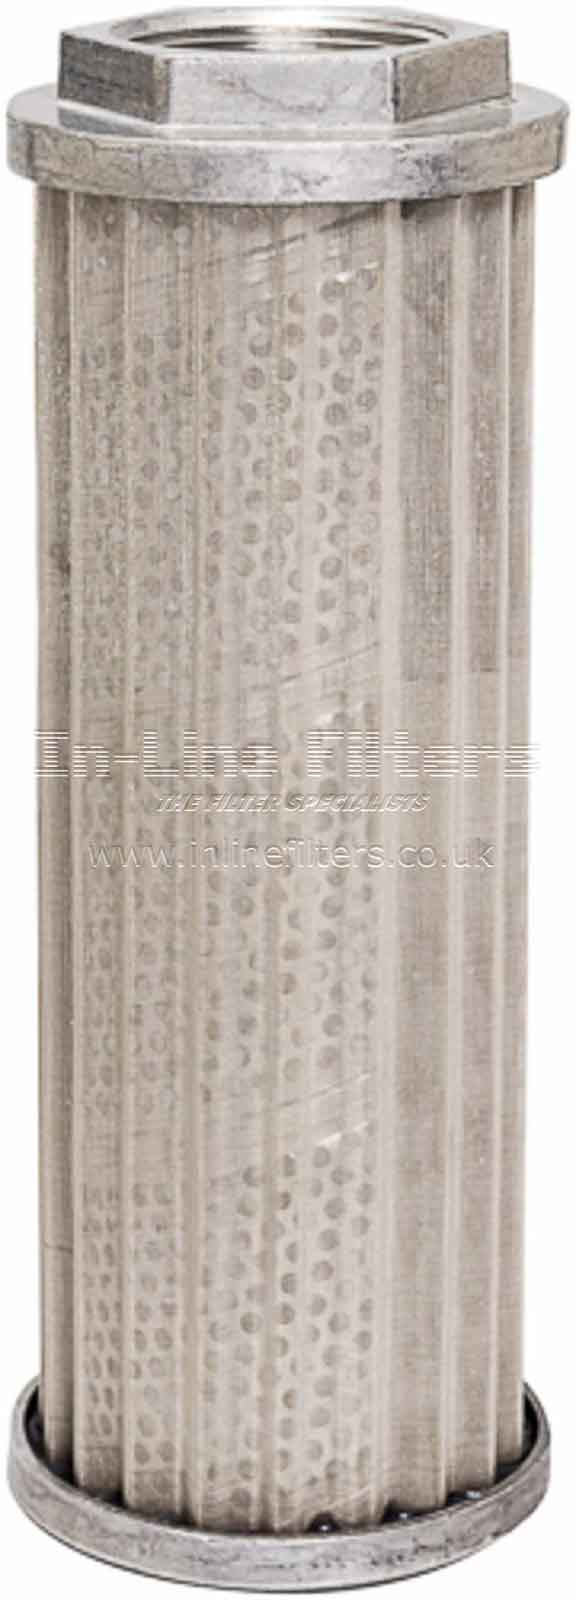 FBW-PT23122 FILTER-Hydraulic(Brand Specific-Baldwin PT23122) - Click Image to Close